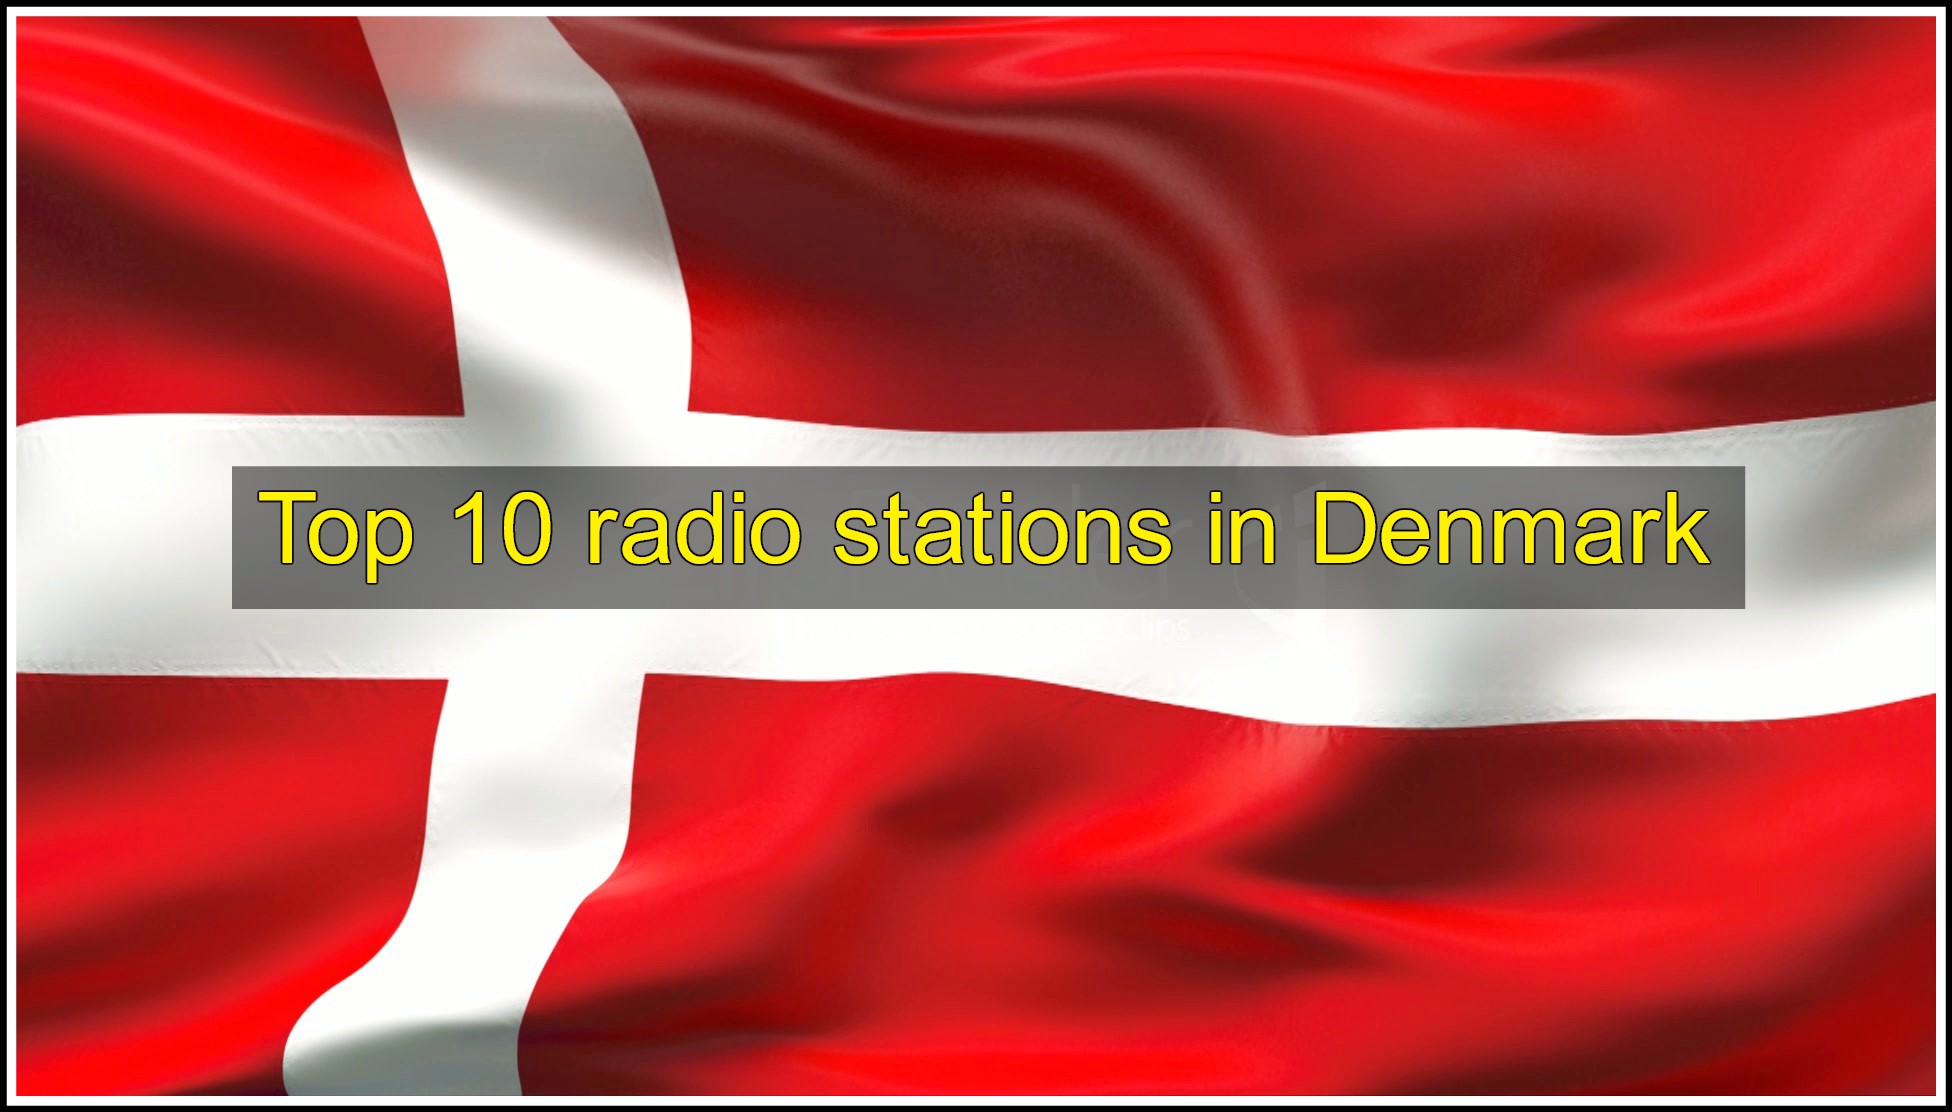 Top 10 radio stations in Denmark live